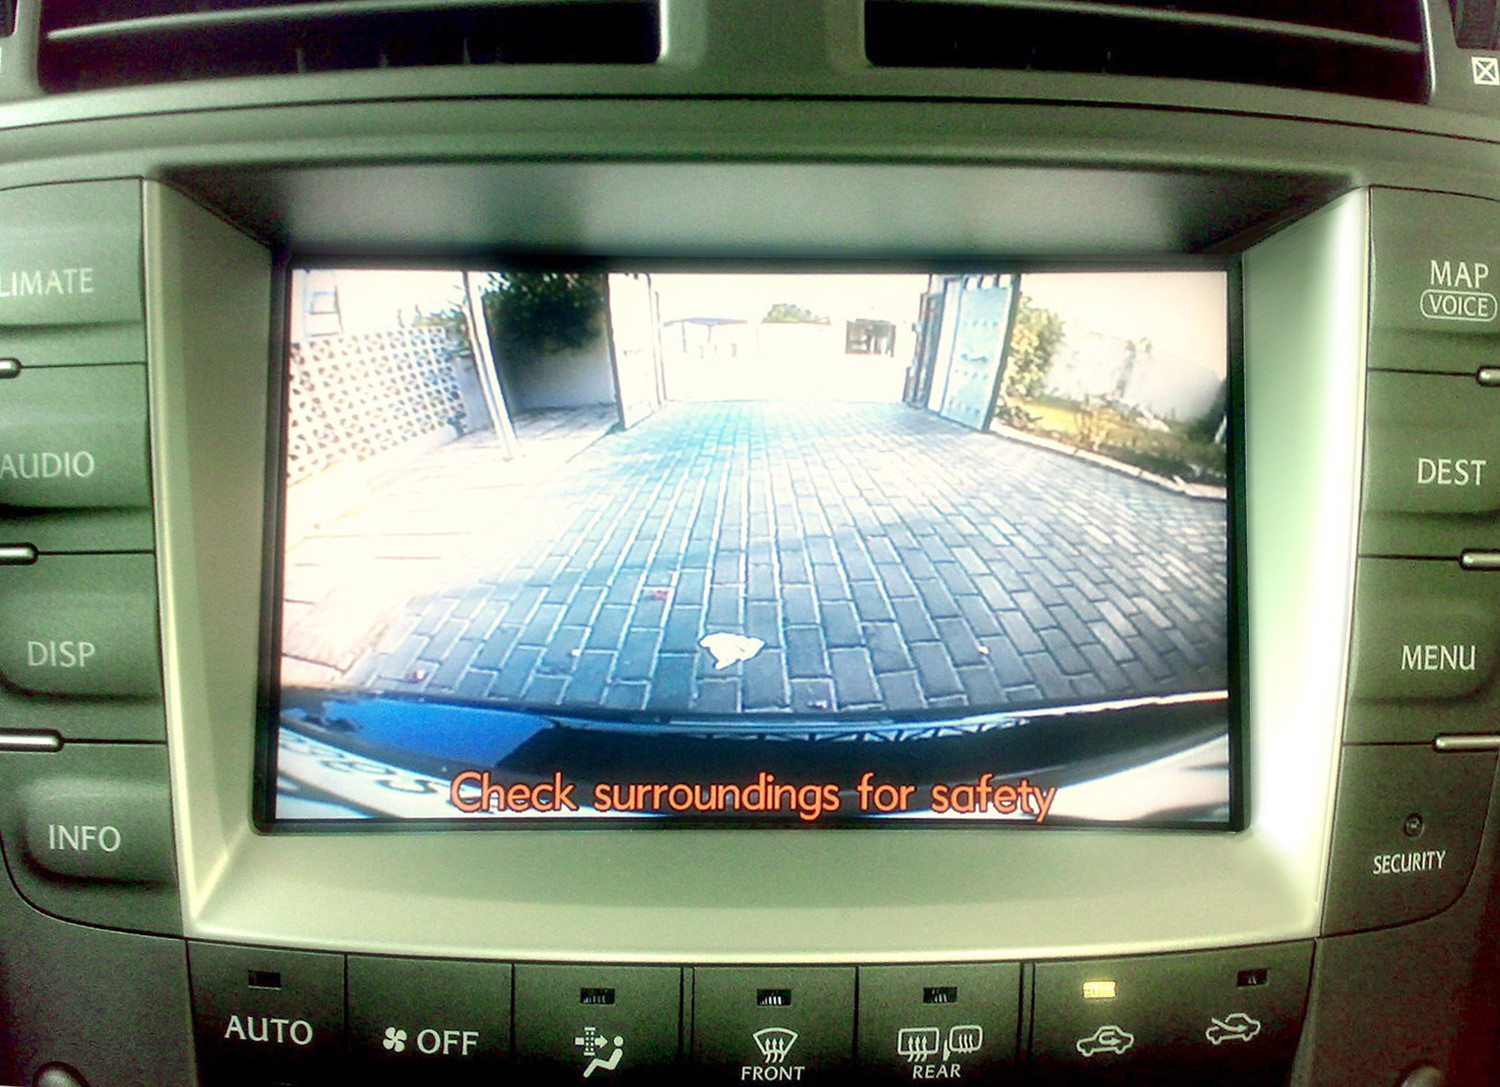 As of May 1, rear cameras, which were once considered luxury add-ons, are now required on all vehicles under 10,000 pounds, showing a 10-foot by 20-foot zone directly behind the vehicle.